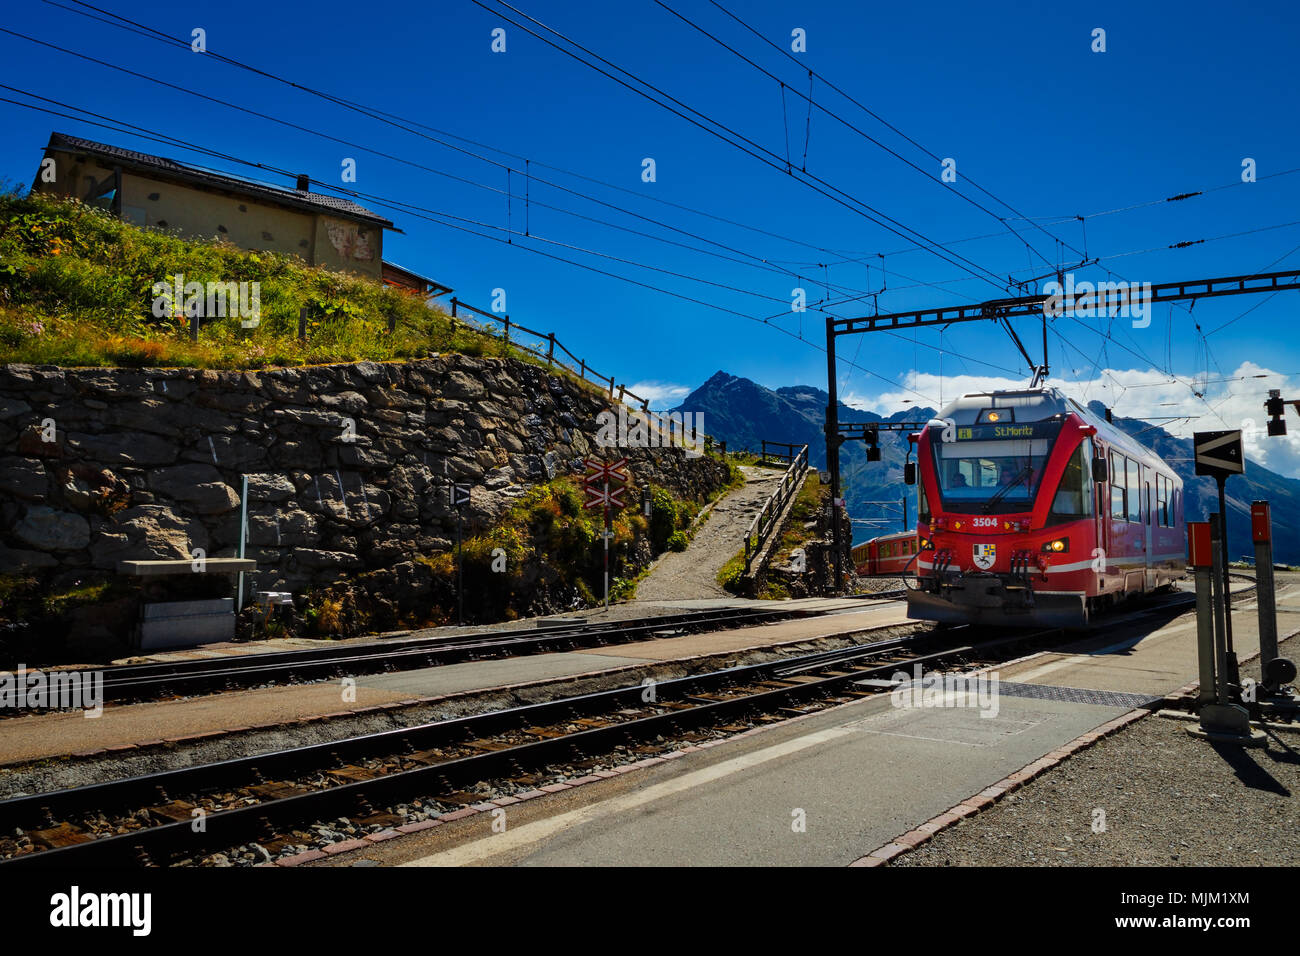 Poschiavo, Grisons, Switzerland - AUGUST 10, 2016 : red train of the Rhaetian Railway entering the station Alp Grum on a sunny day in summer - Stock Image